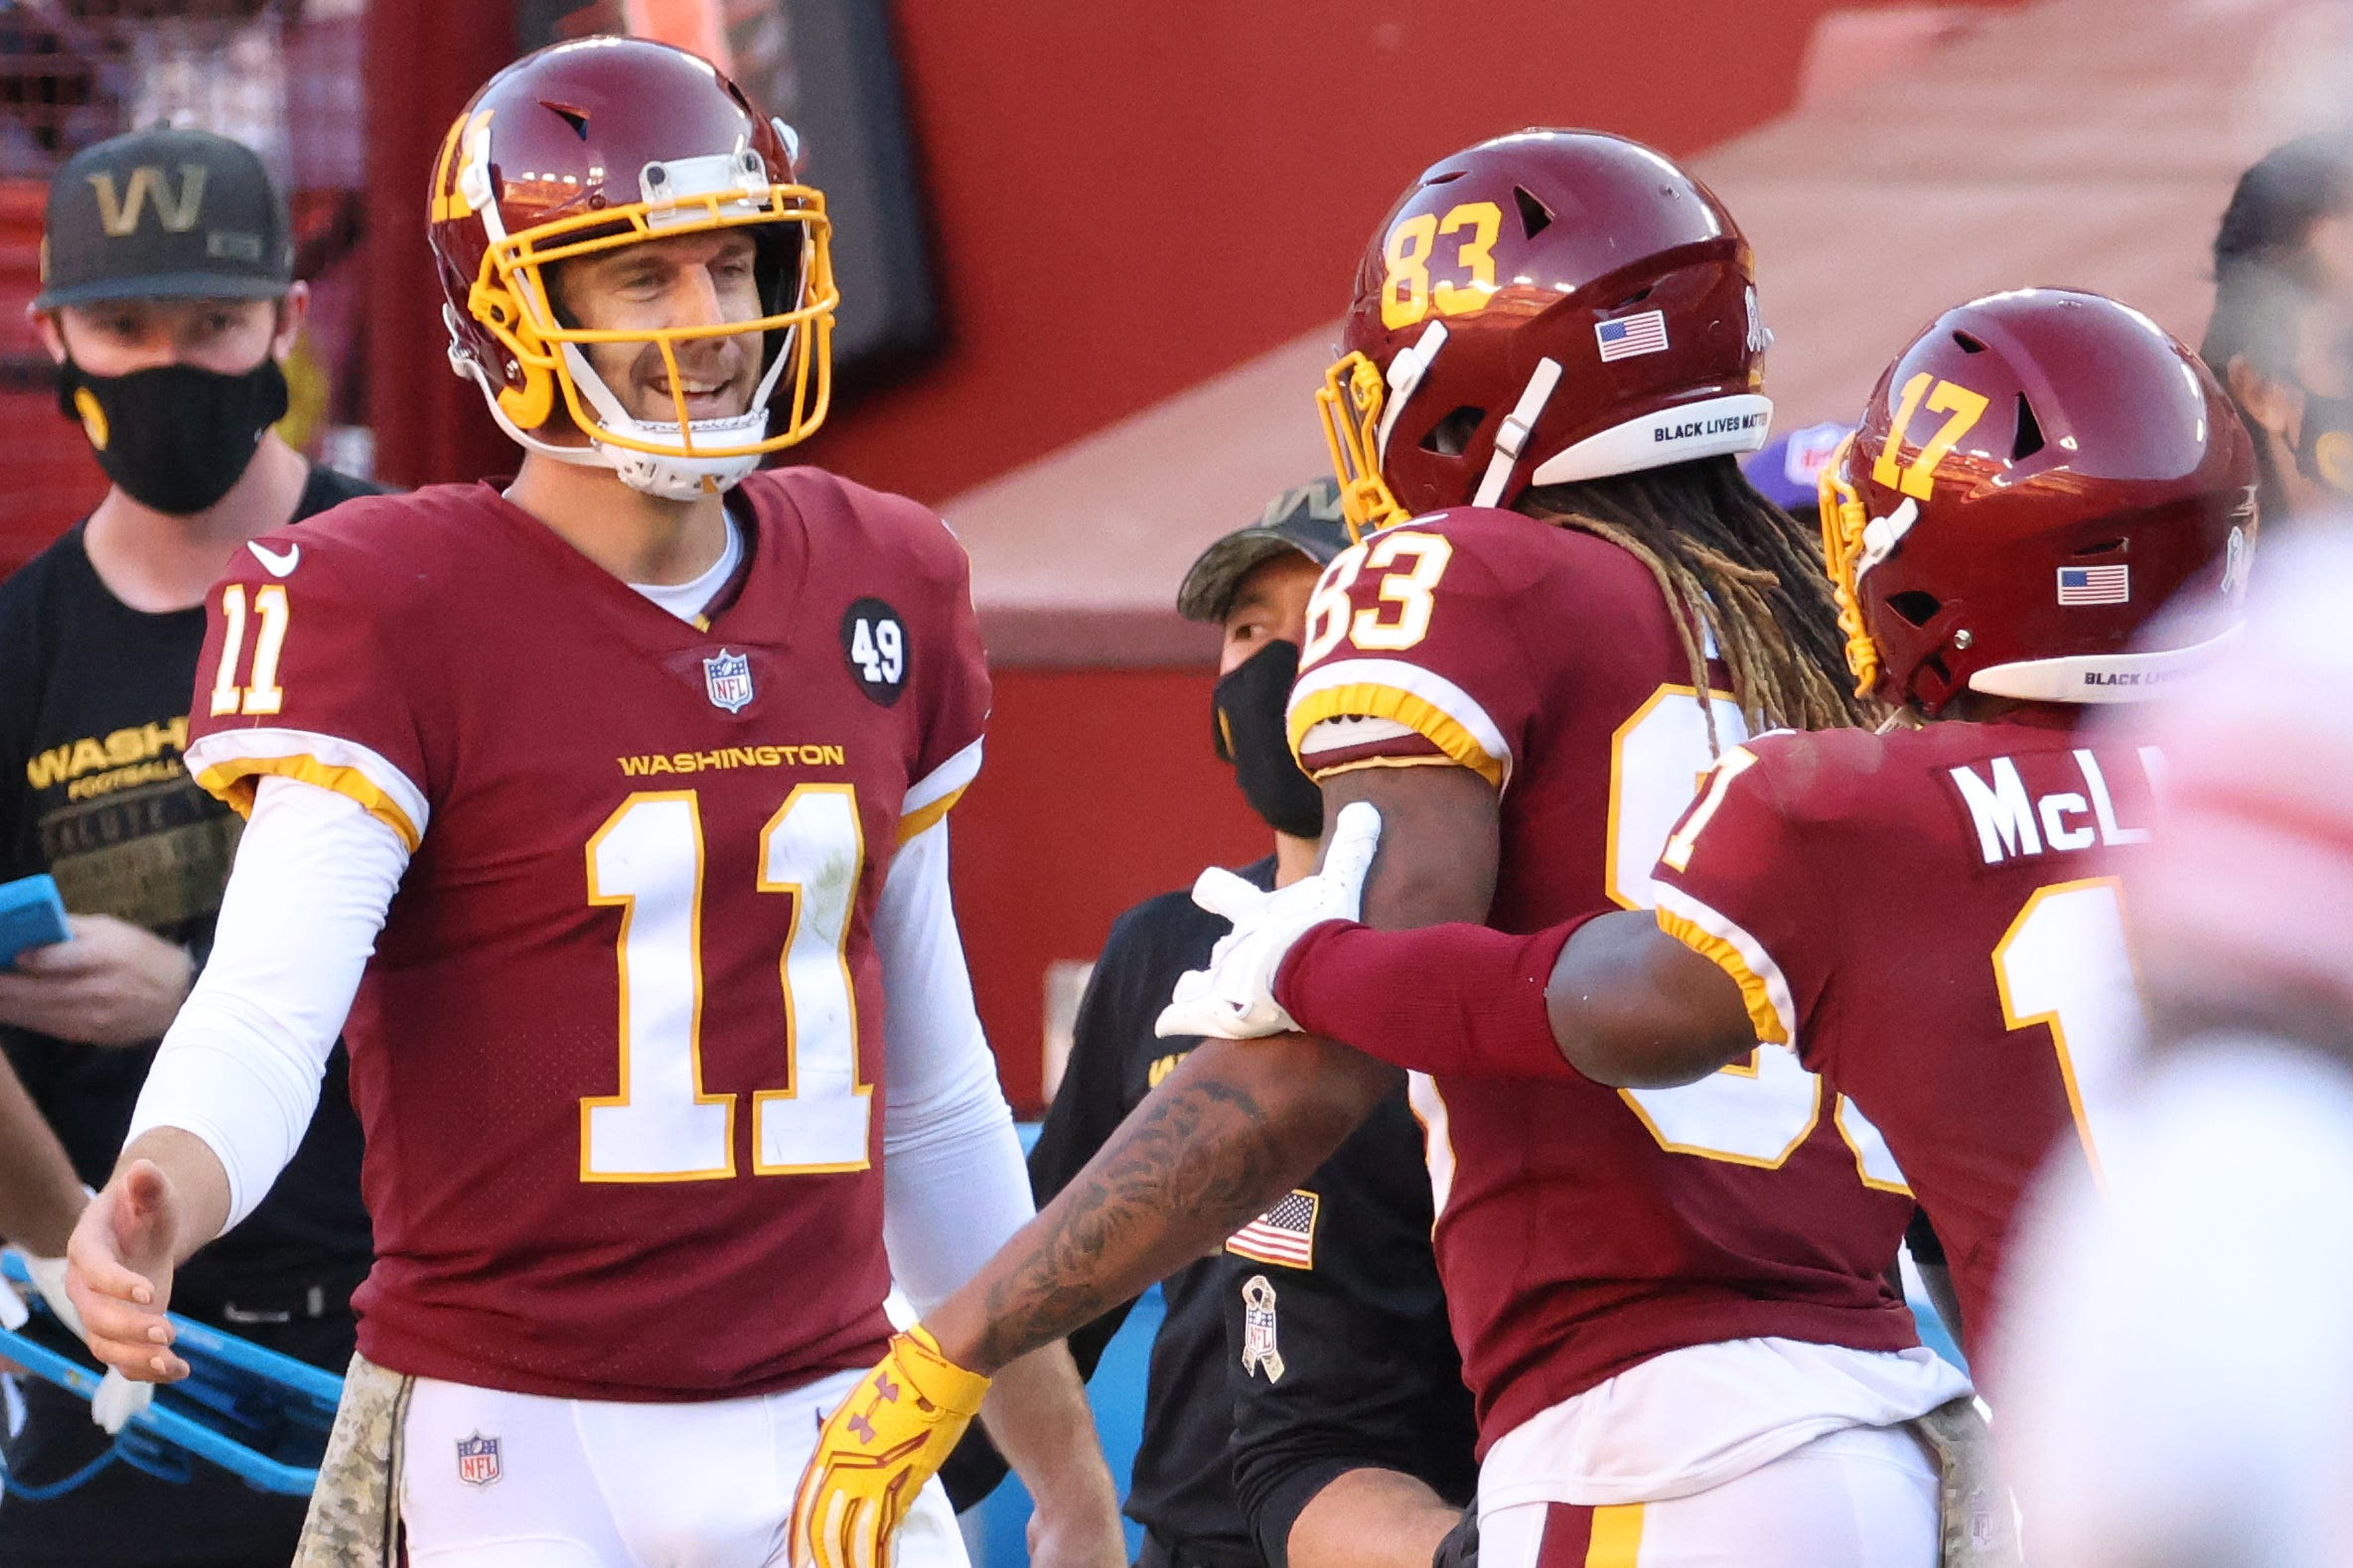 Alex Smith's comeback story is an inspiration, even to the Detroit Lions